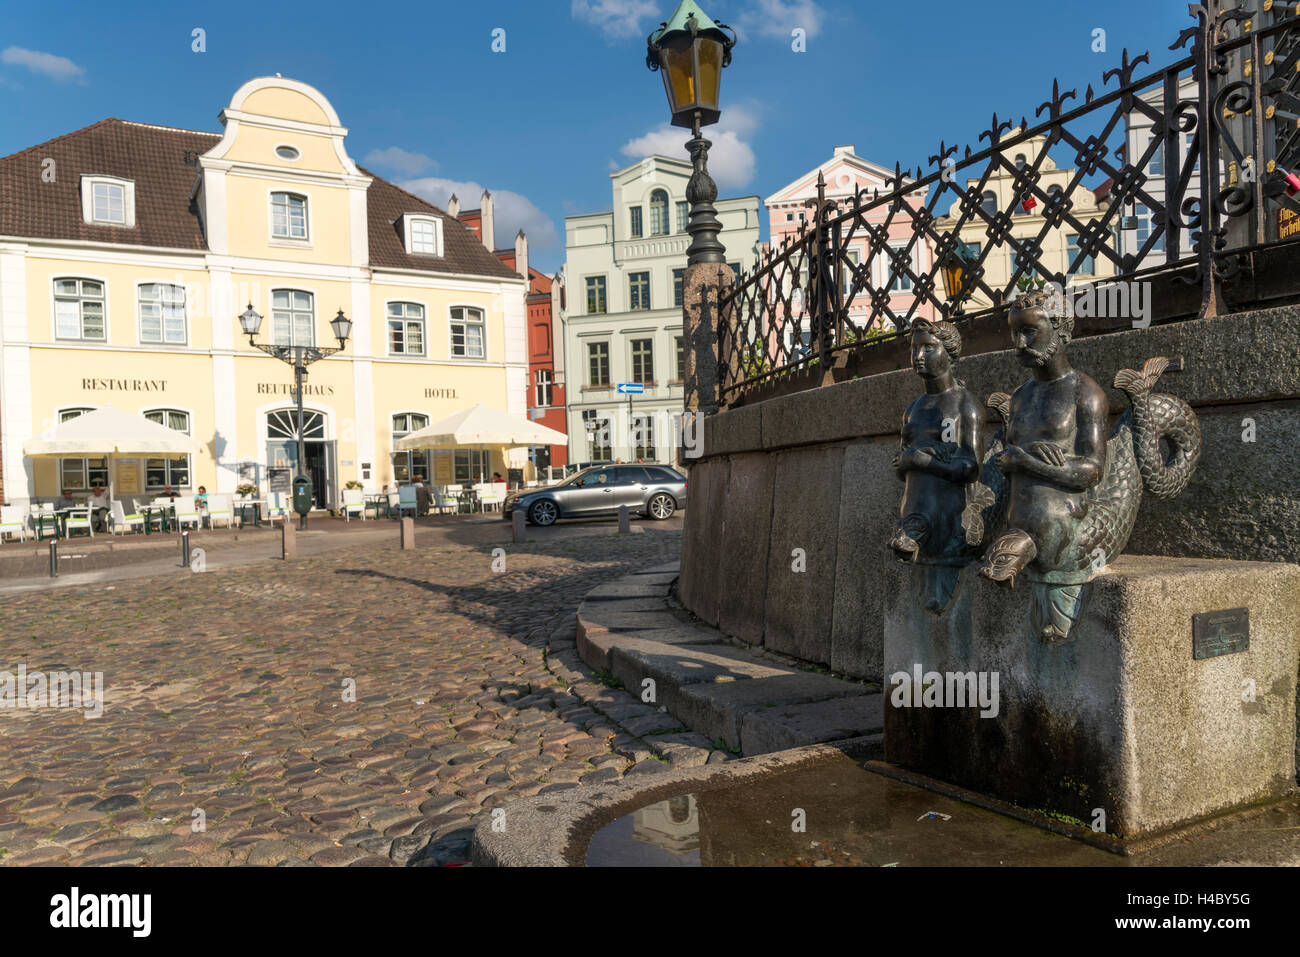 bronce statues 'Nix und Nixe' at the landmark waterworks or Wasserkunst, Hanseatic City of Wismar, Mecklenburg - Stock Image